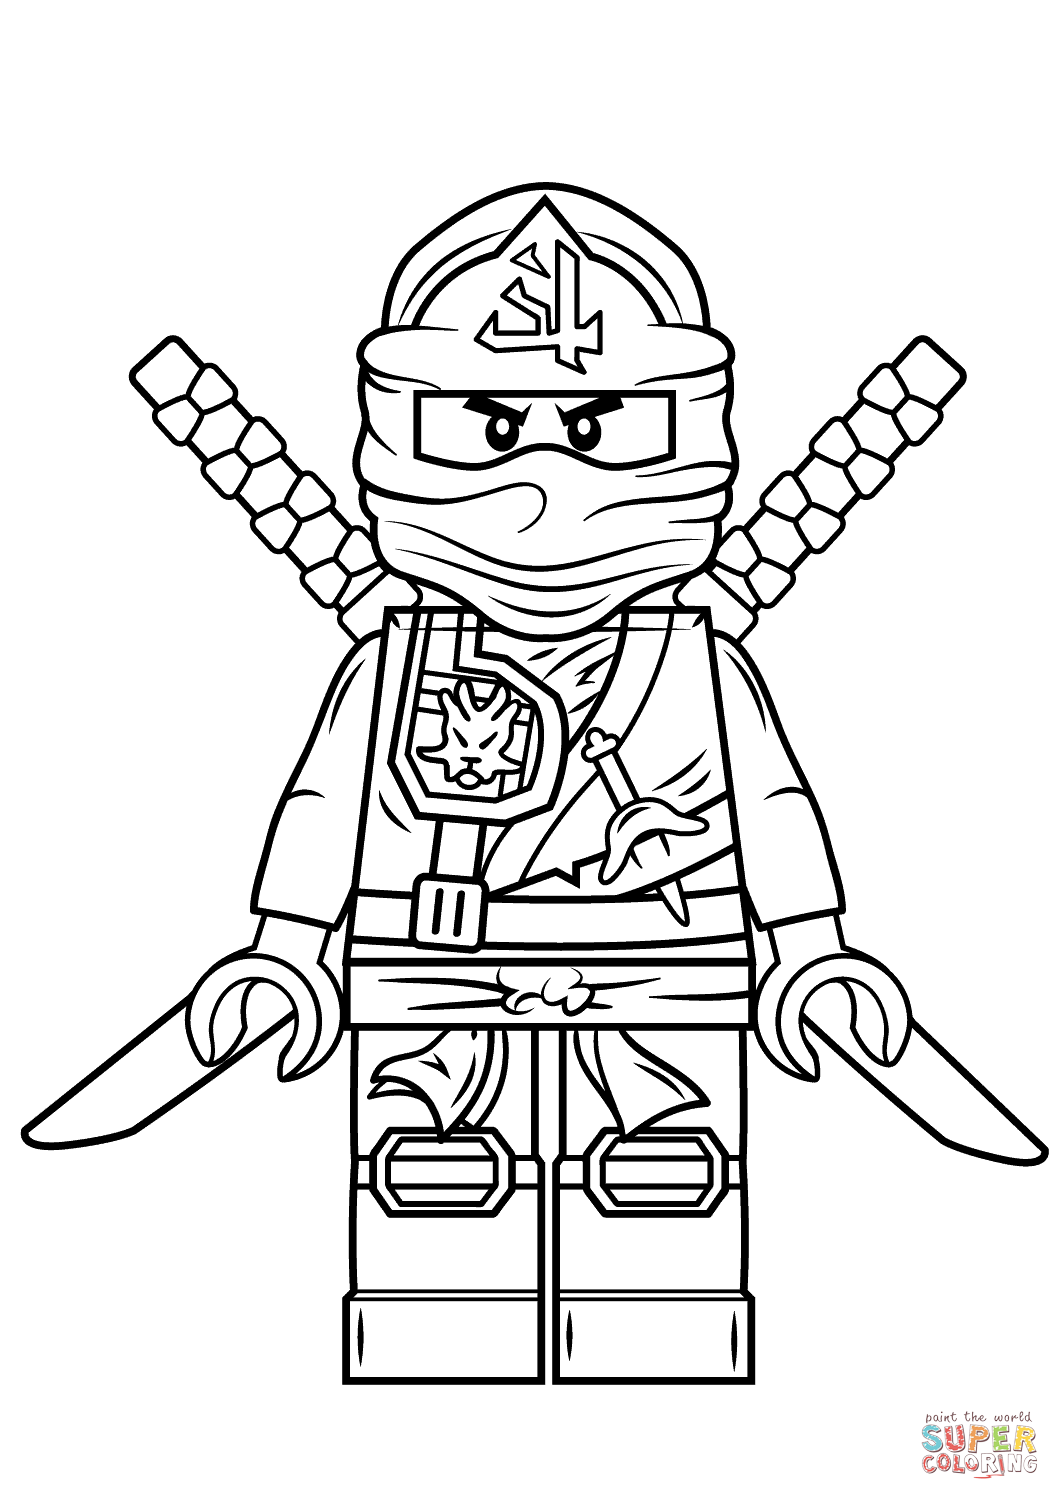 Lego Ninjago Green Ninja Super Coloring Kids stuff Pinterest